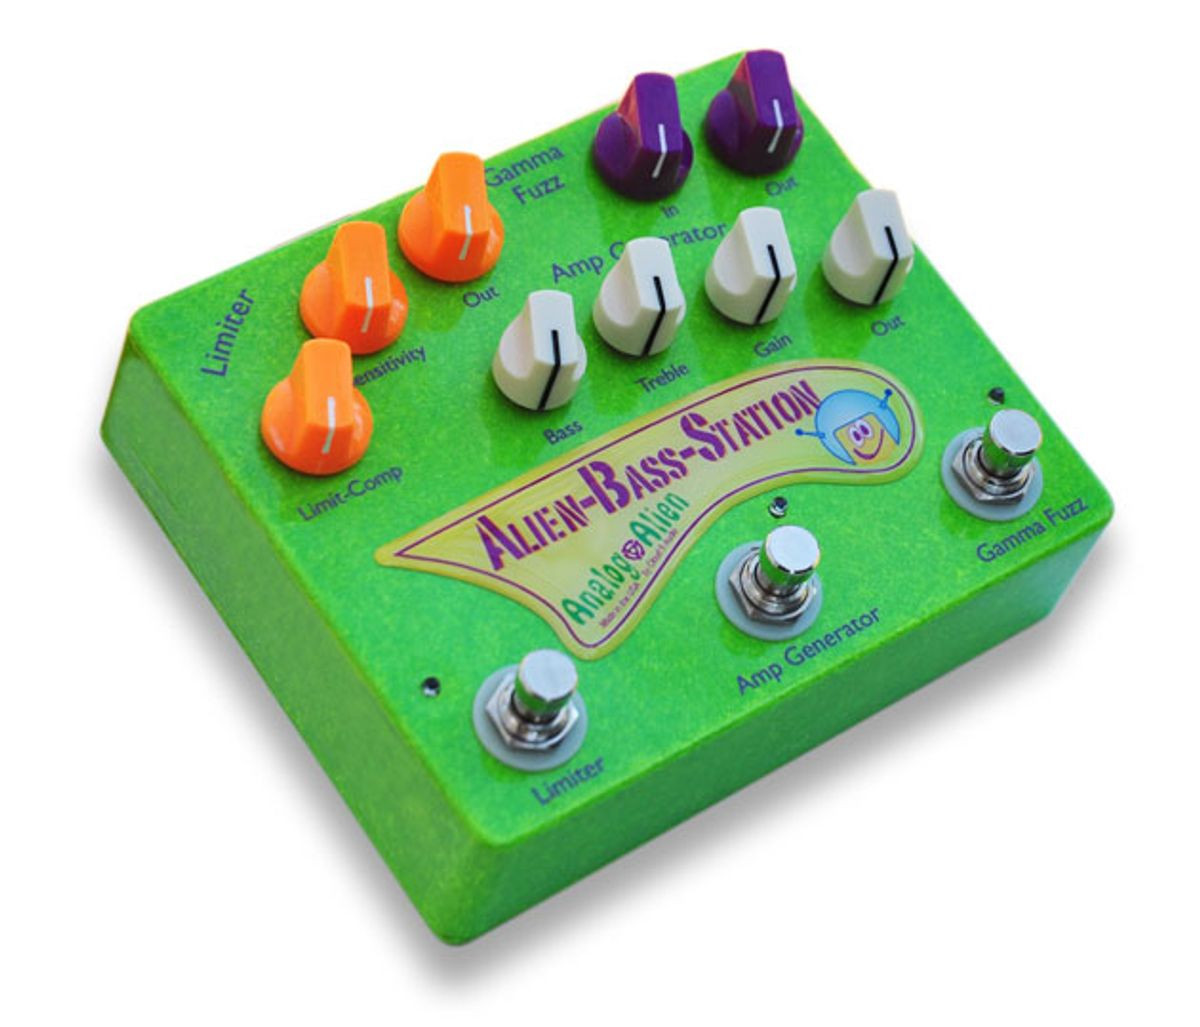 Analog Alien Introduces the Alien Bass Station